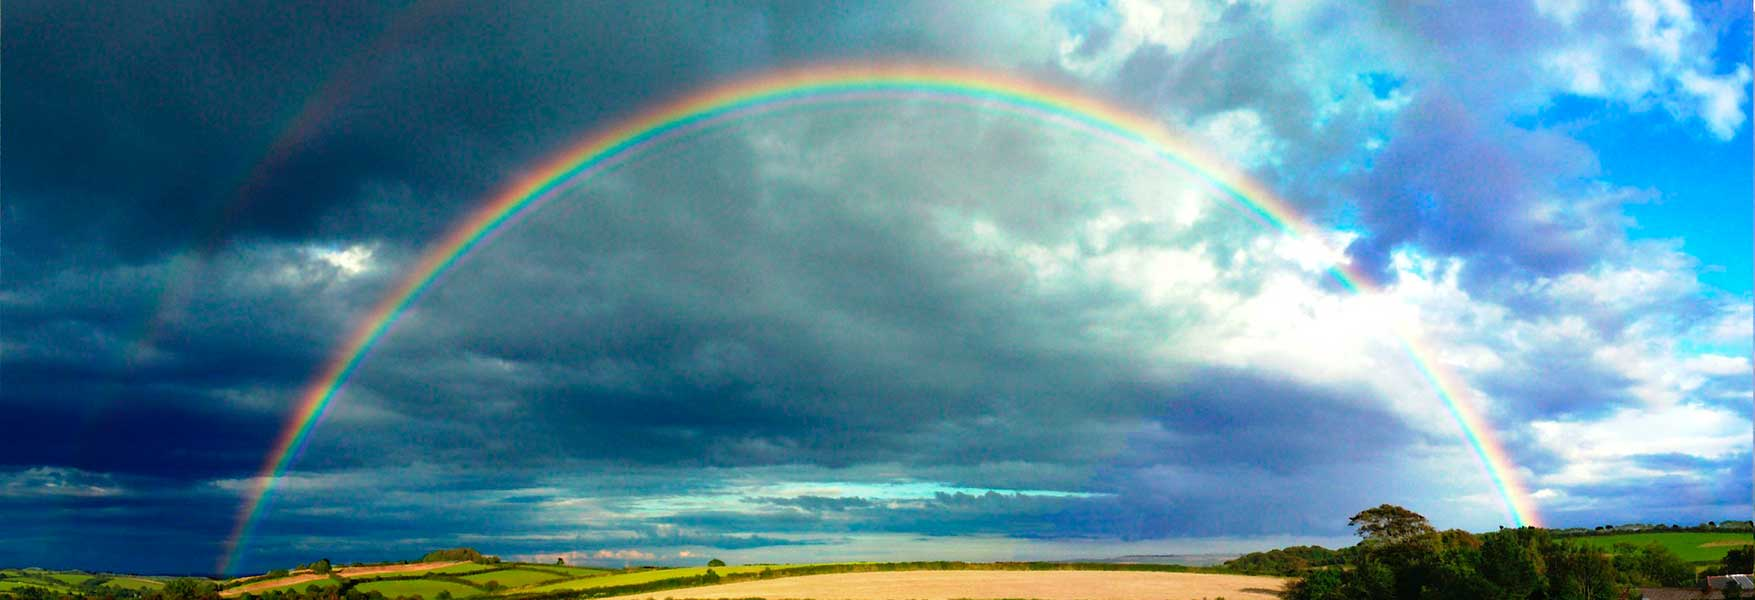 Why Does the Rainbow have 7 Colors? - OpenMind